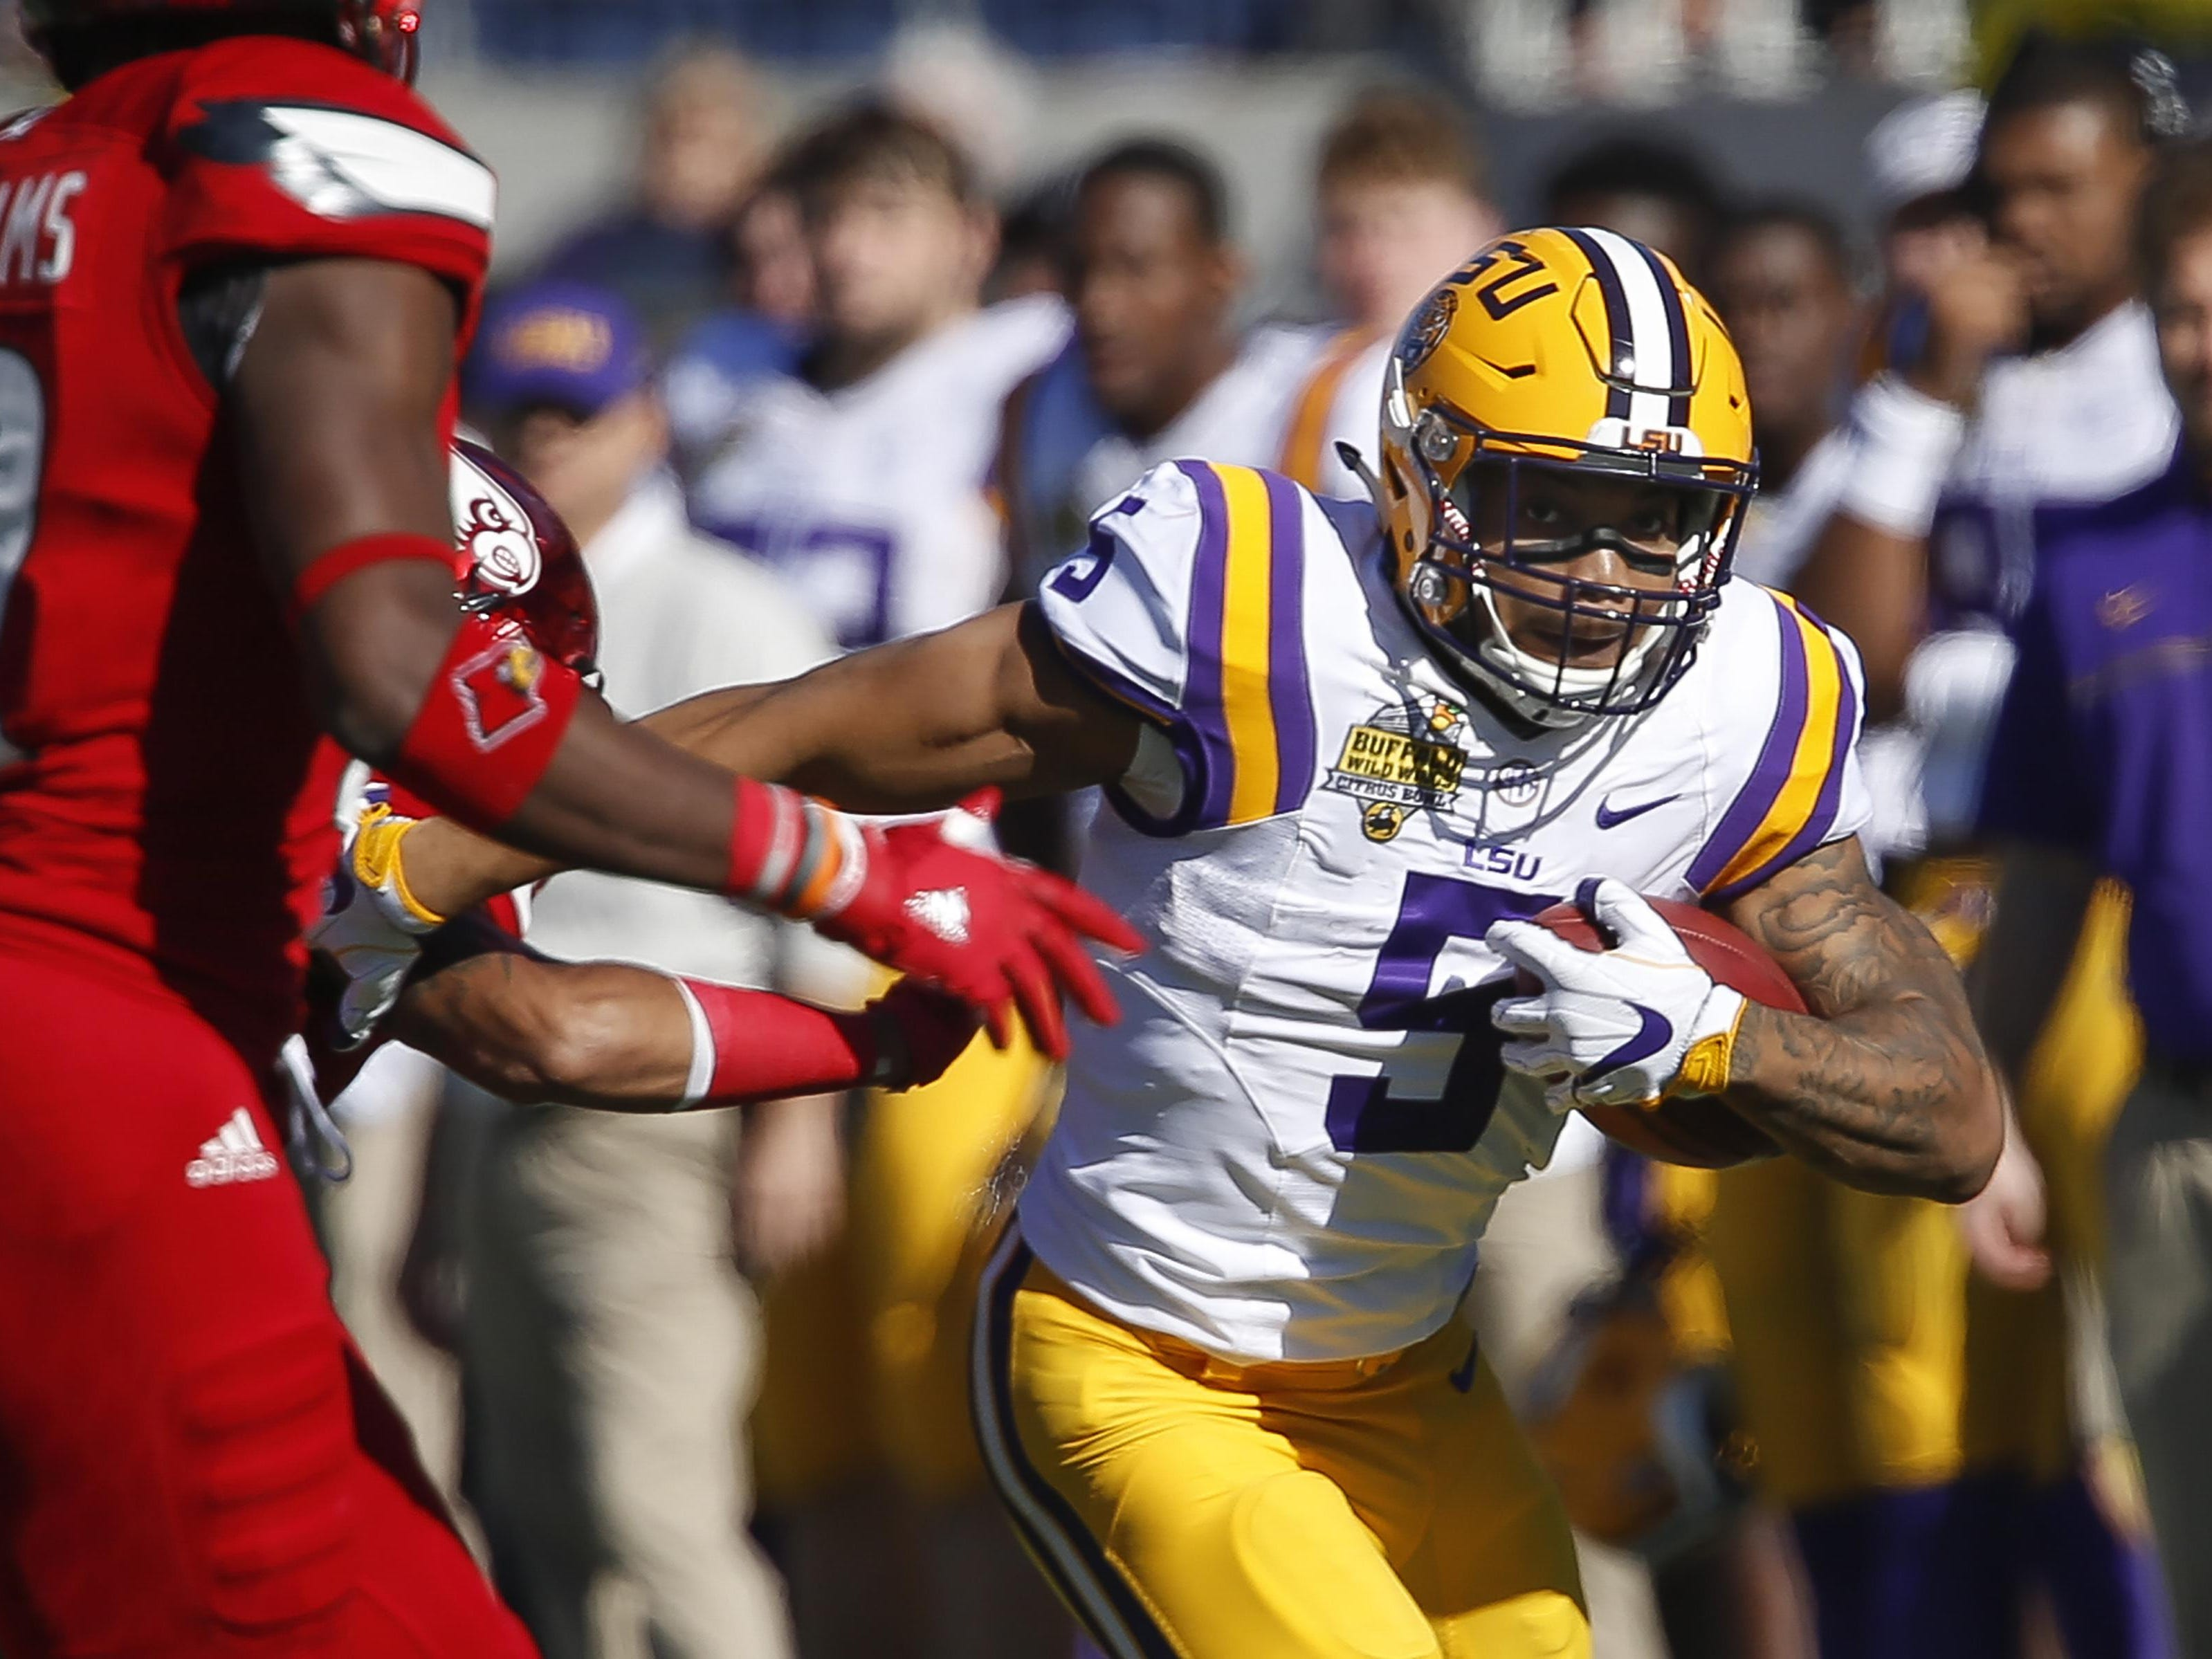 LSU Tigers running back Derrius Guice (5) runs for a first down during the first quarter of an NCAA football game against the LSU Tigers in the Buffalo Wild Wings Citrus Bowl at Camping World Stadium.